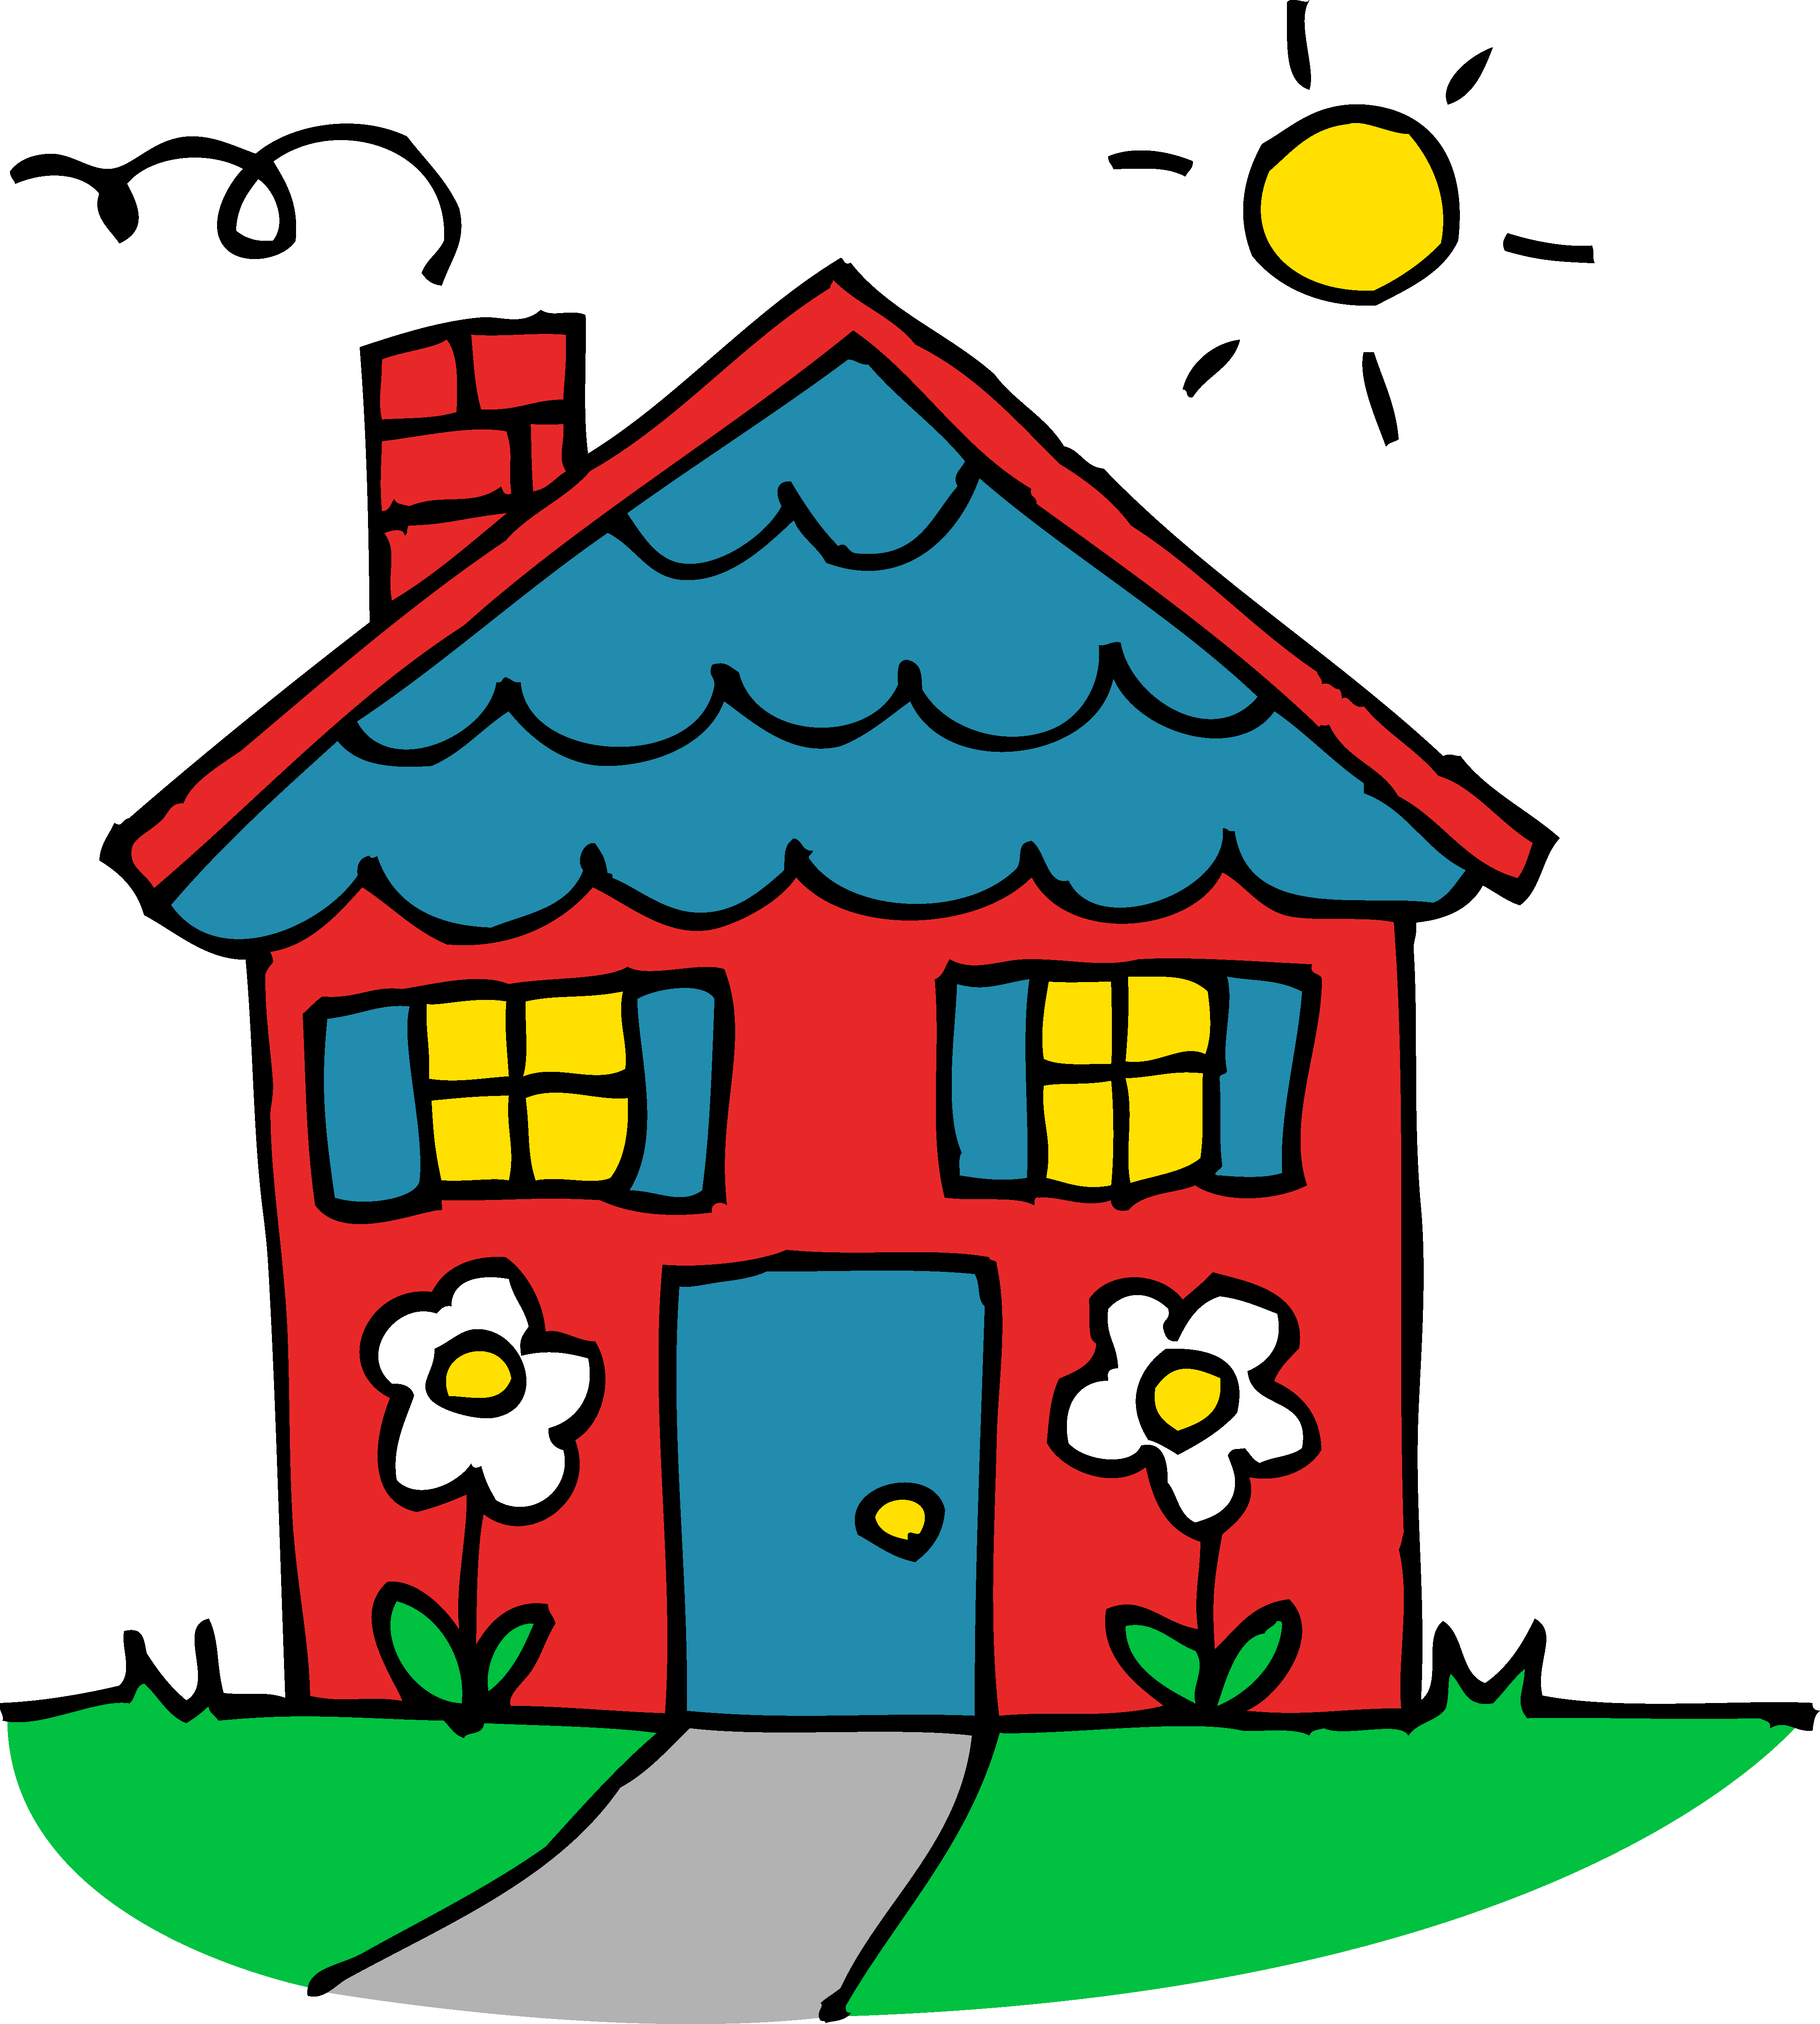 Fb clipart for moving to new house image royalty free library Cute Red and Blue House | Clipart Panda - Free Clipart Images ... image royalty free library